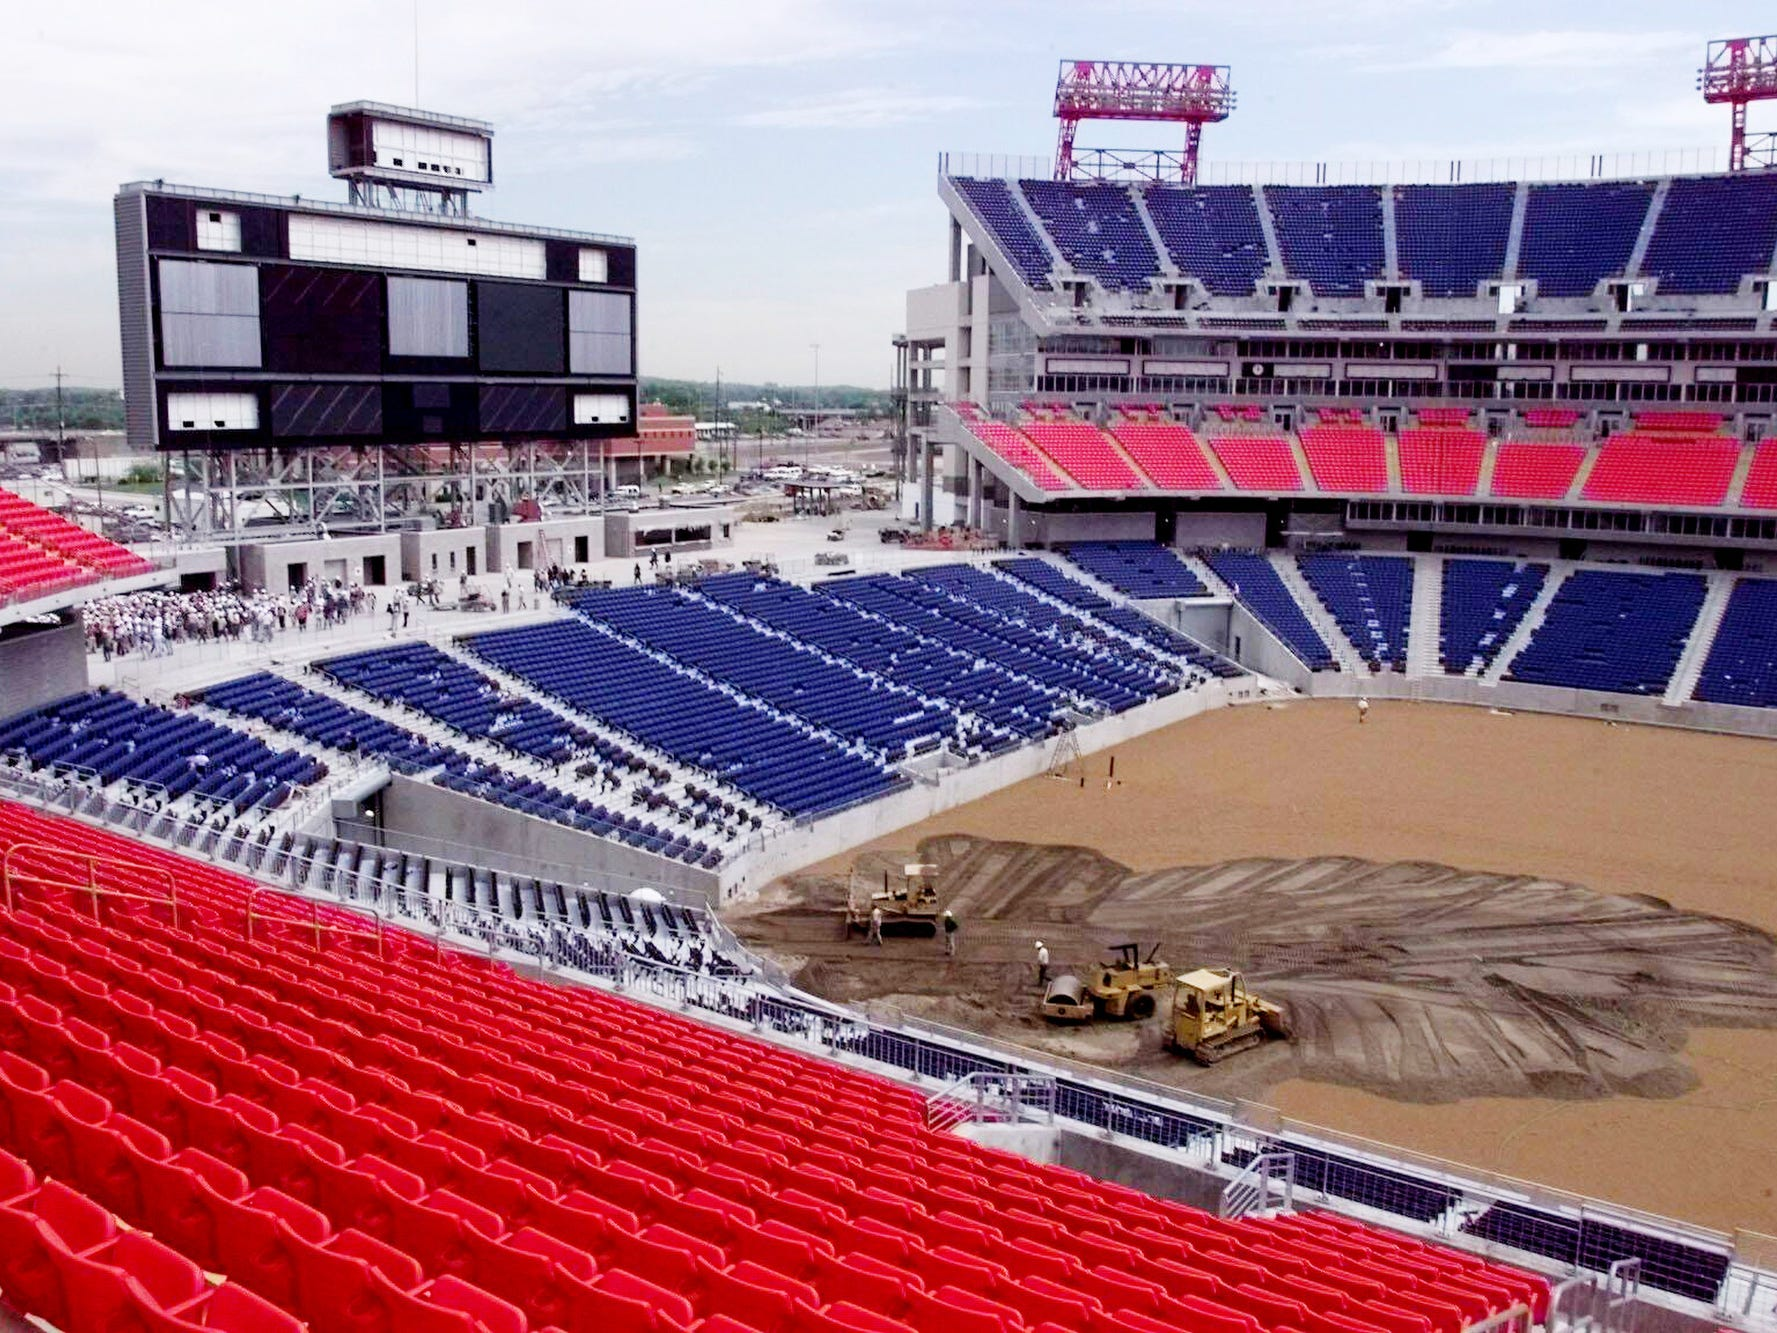 Dirt is being spread on the playing field at the football stadium as the team watches from the north stands May 3, 1999.